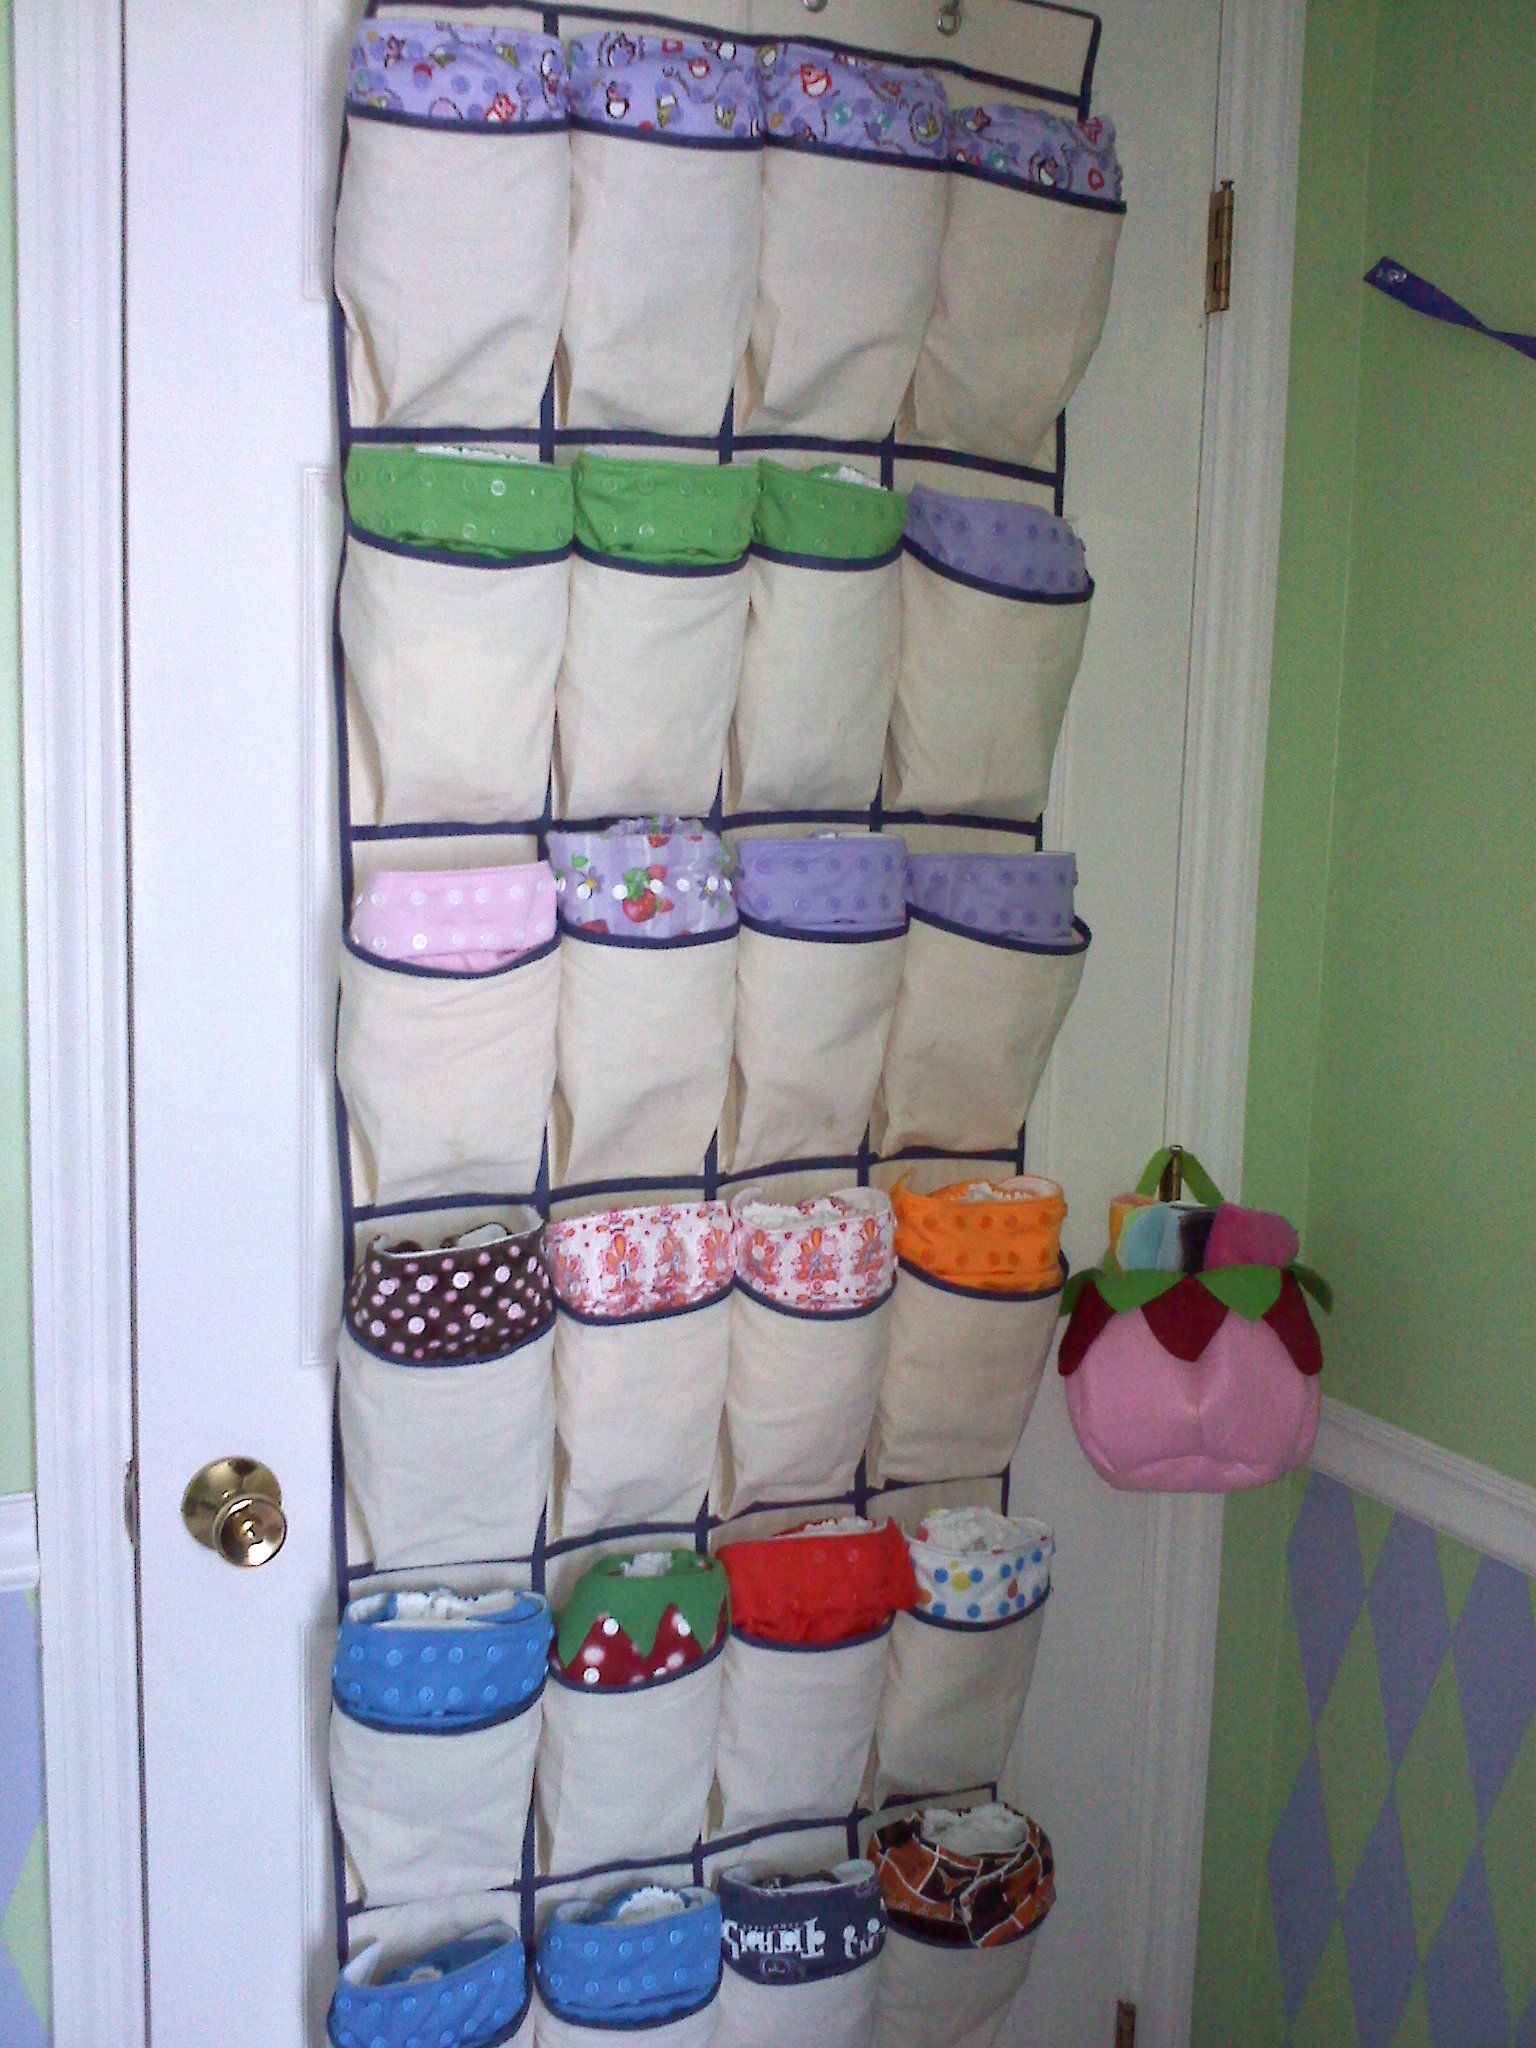 Cloth Diaper Storage An Over The Door Shoe Hanger For The Dipes